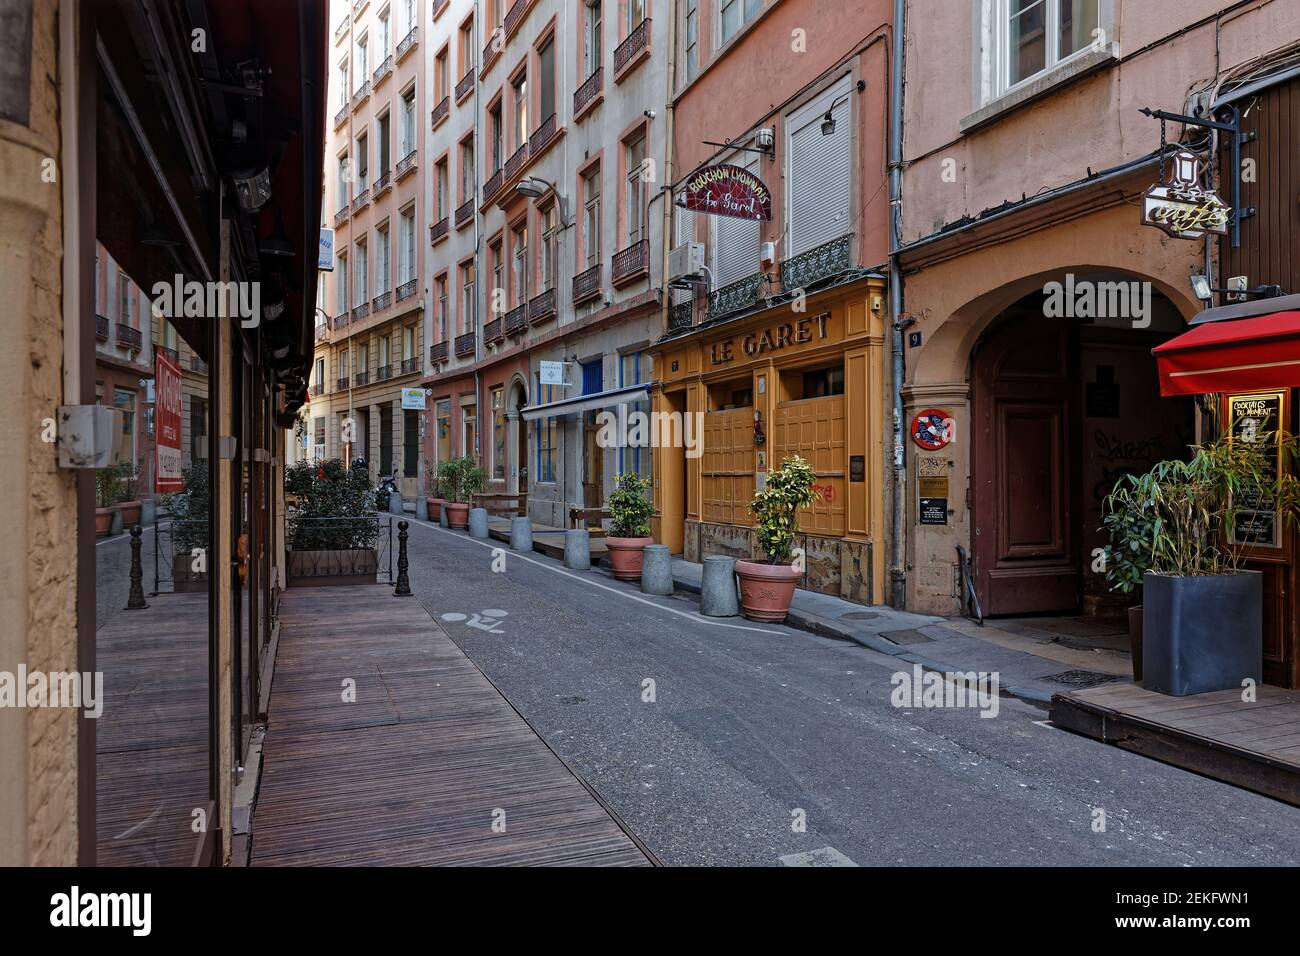 LYON, FRANCE, February 19, 2021 : Following the restrictions, a majority of bars and restaurants have to close their doors in France. A lot could defi Stock Photo